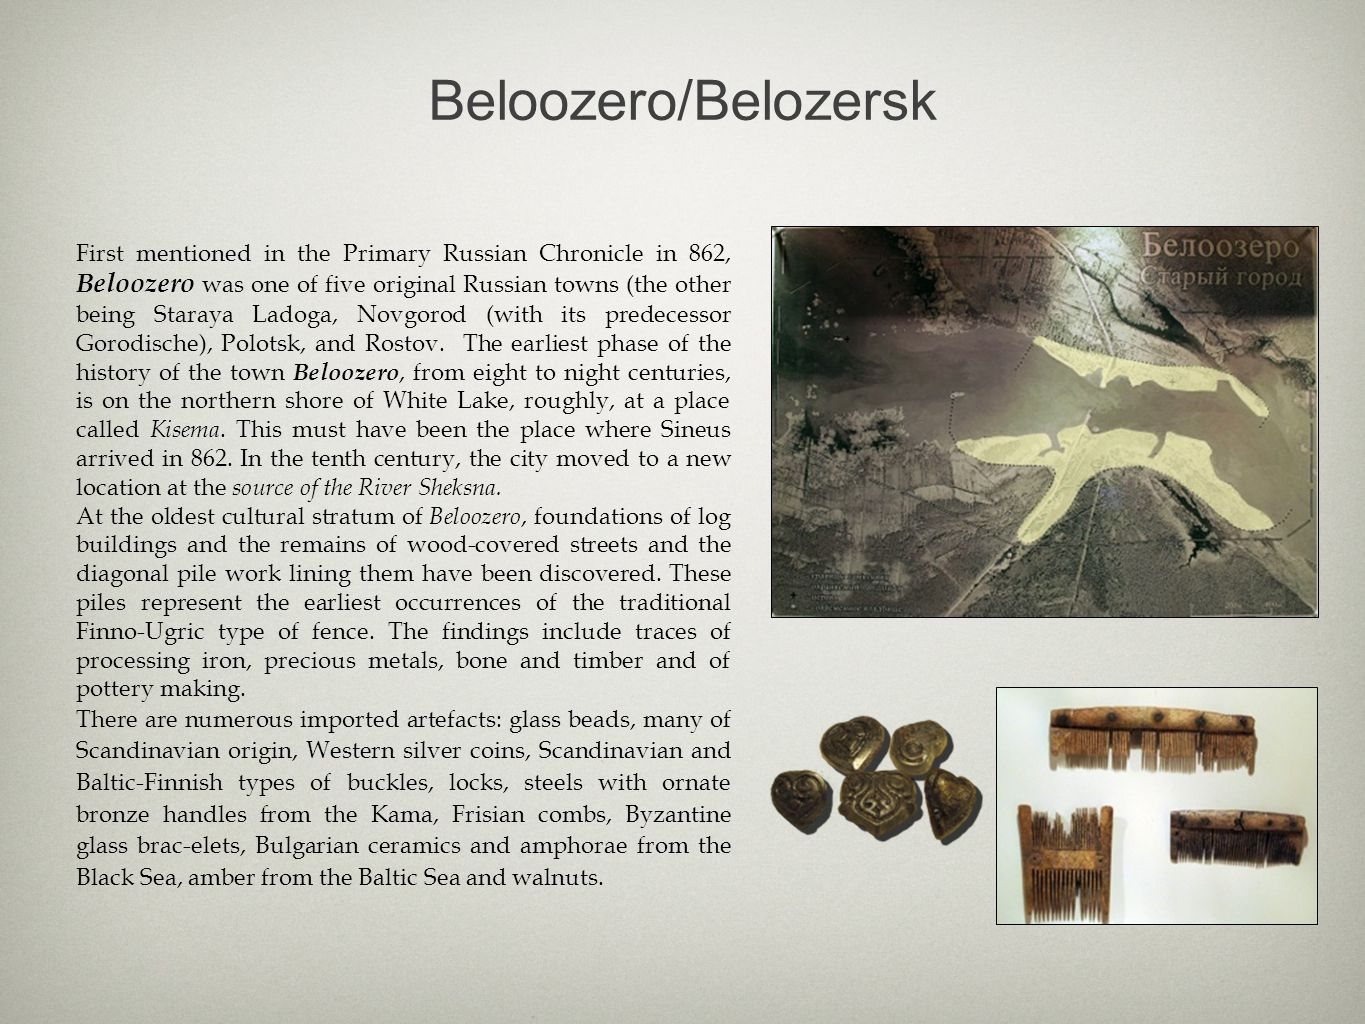 Beloozero/Belozersk First mentioned in the Primary Russian Chronicle in 862, Beloozero was one of five original Russian towns (the other being Staraya Ladoga, Novgorod (with its predecessor Gorodische), Polotsk, and Rostov.